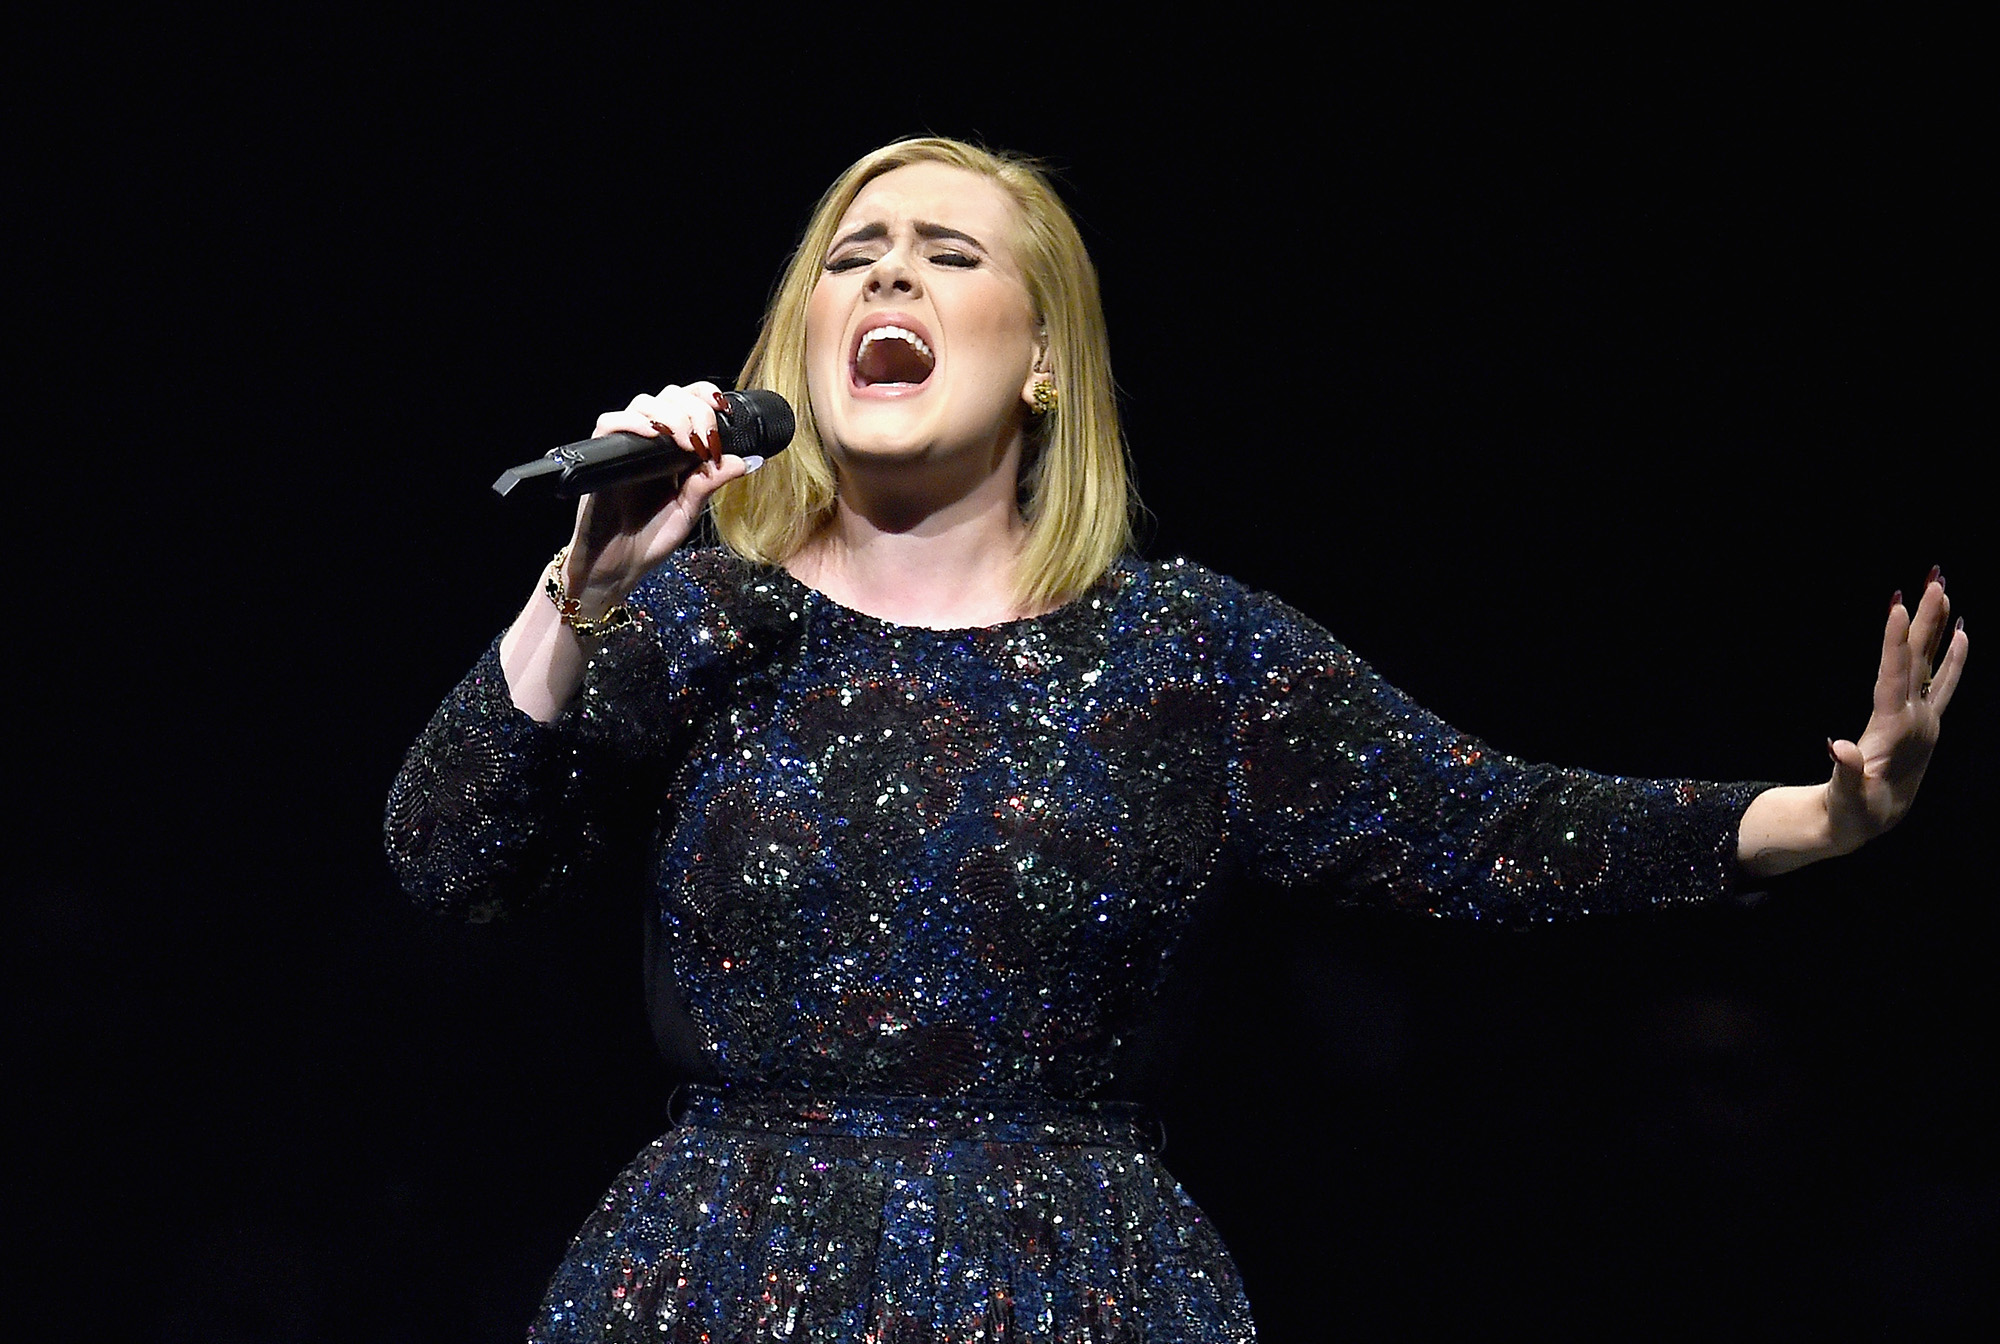 Adele performs on stage during her North American tour at Staples Center on August 5, 2016 in Los Angeles, California.  (Photo by Kevin Winter/Getty Images for BT PR)